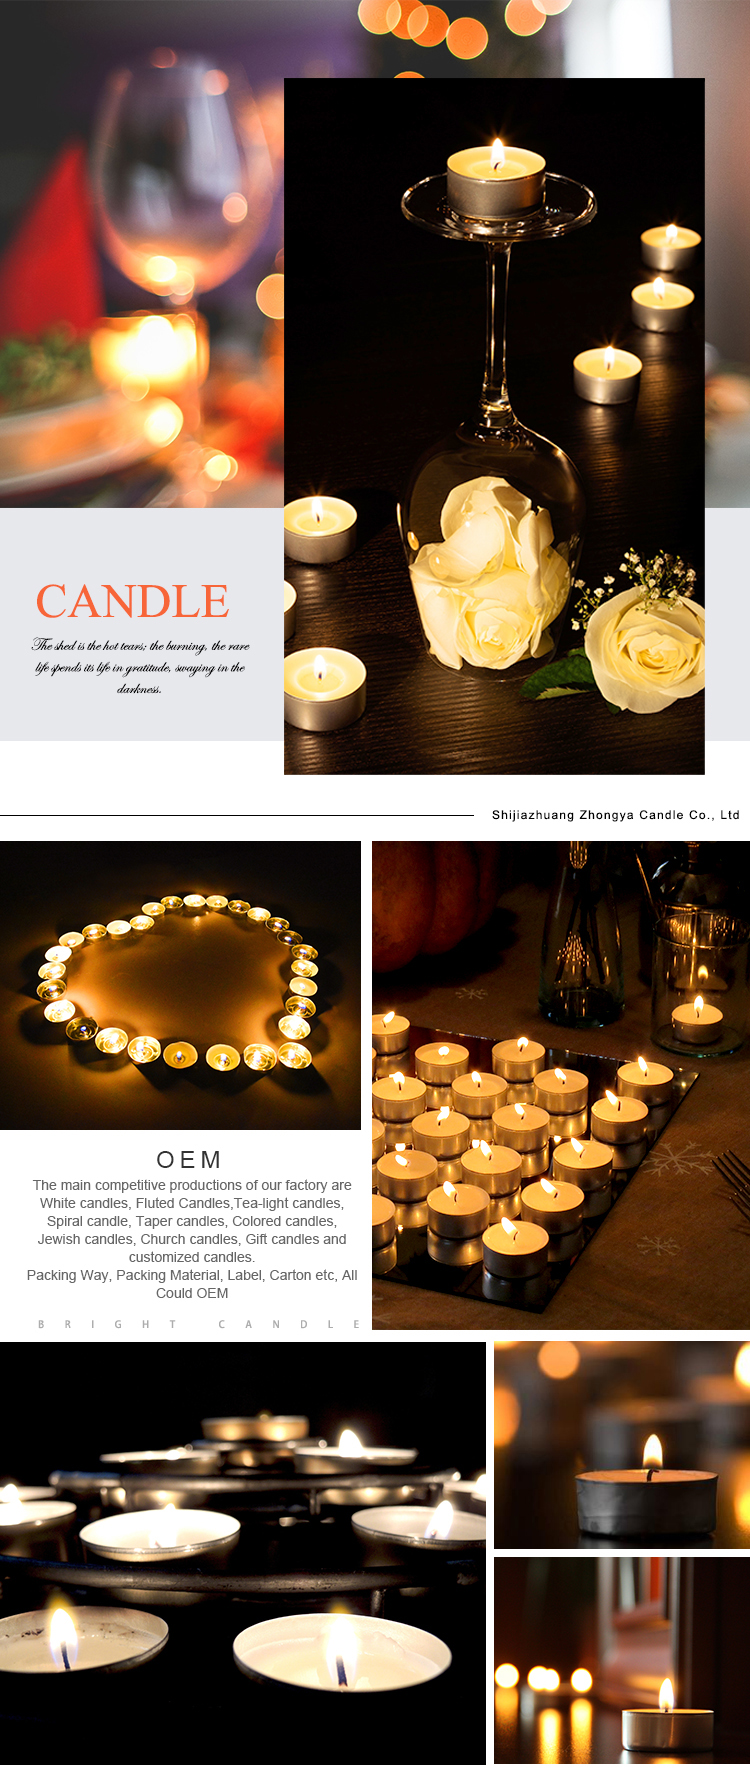 Hot Sale Paraffin Wax Long Burning No Scented Colour Tealight Candles stock